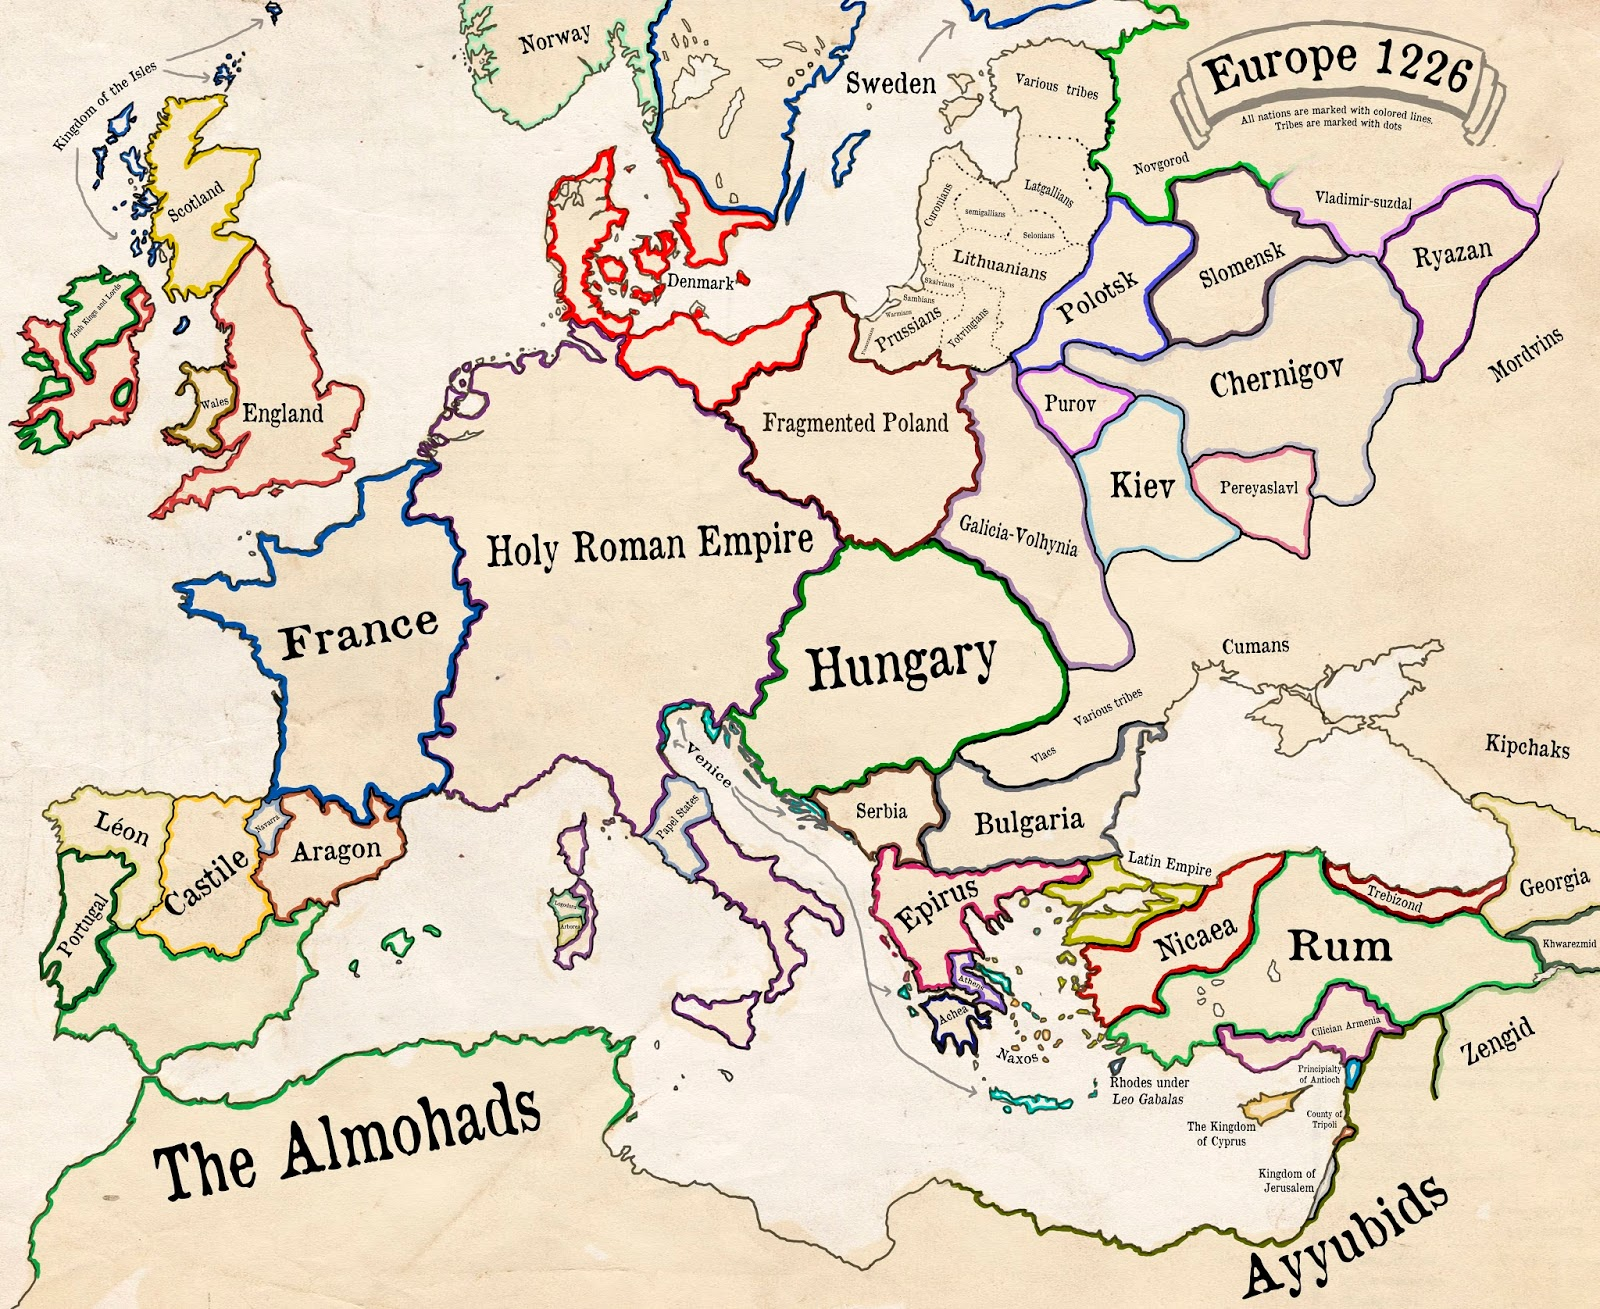 Europe in 1226